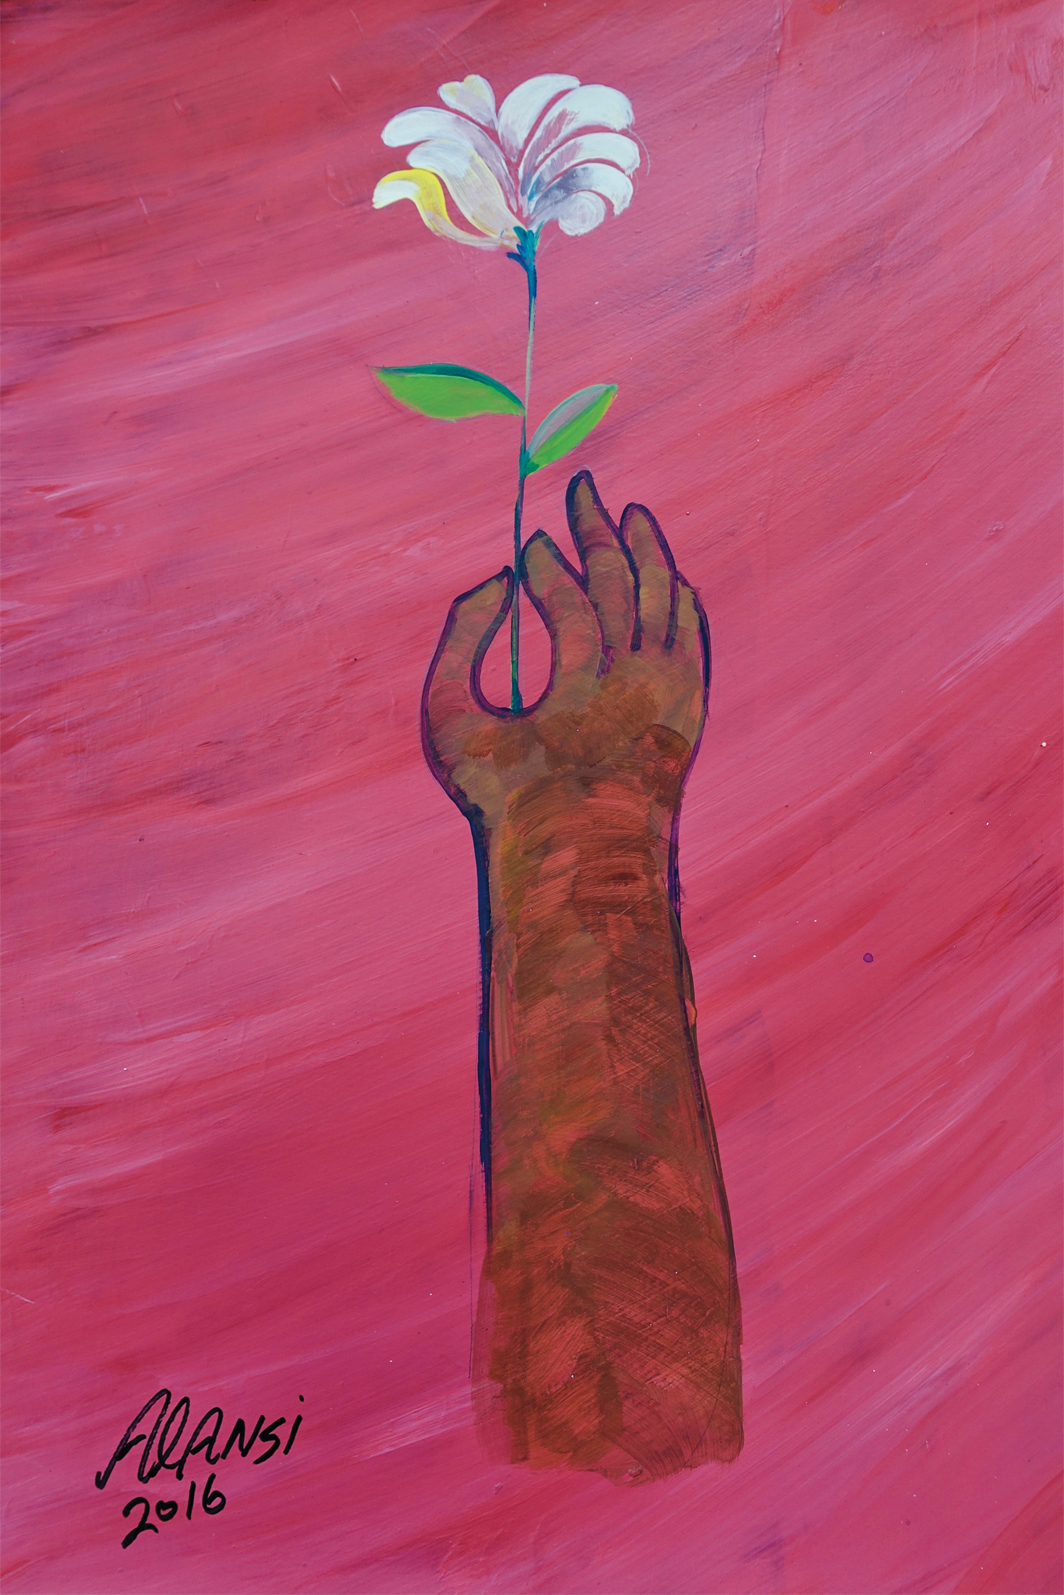 "Muhammad Ansi, Untitled (Hand Holding a Flower), 2016, acrylic on paper, 17 × 12""."